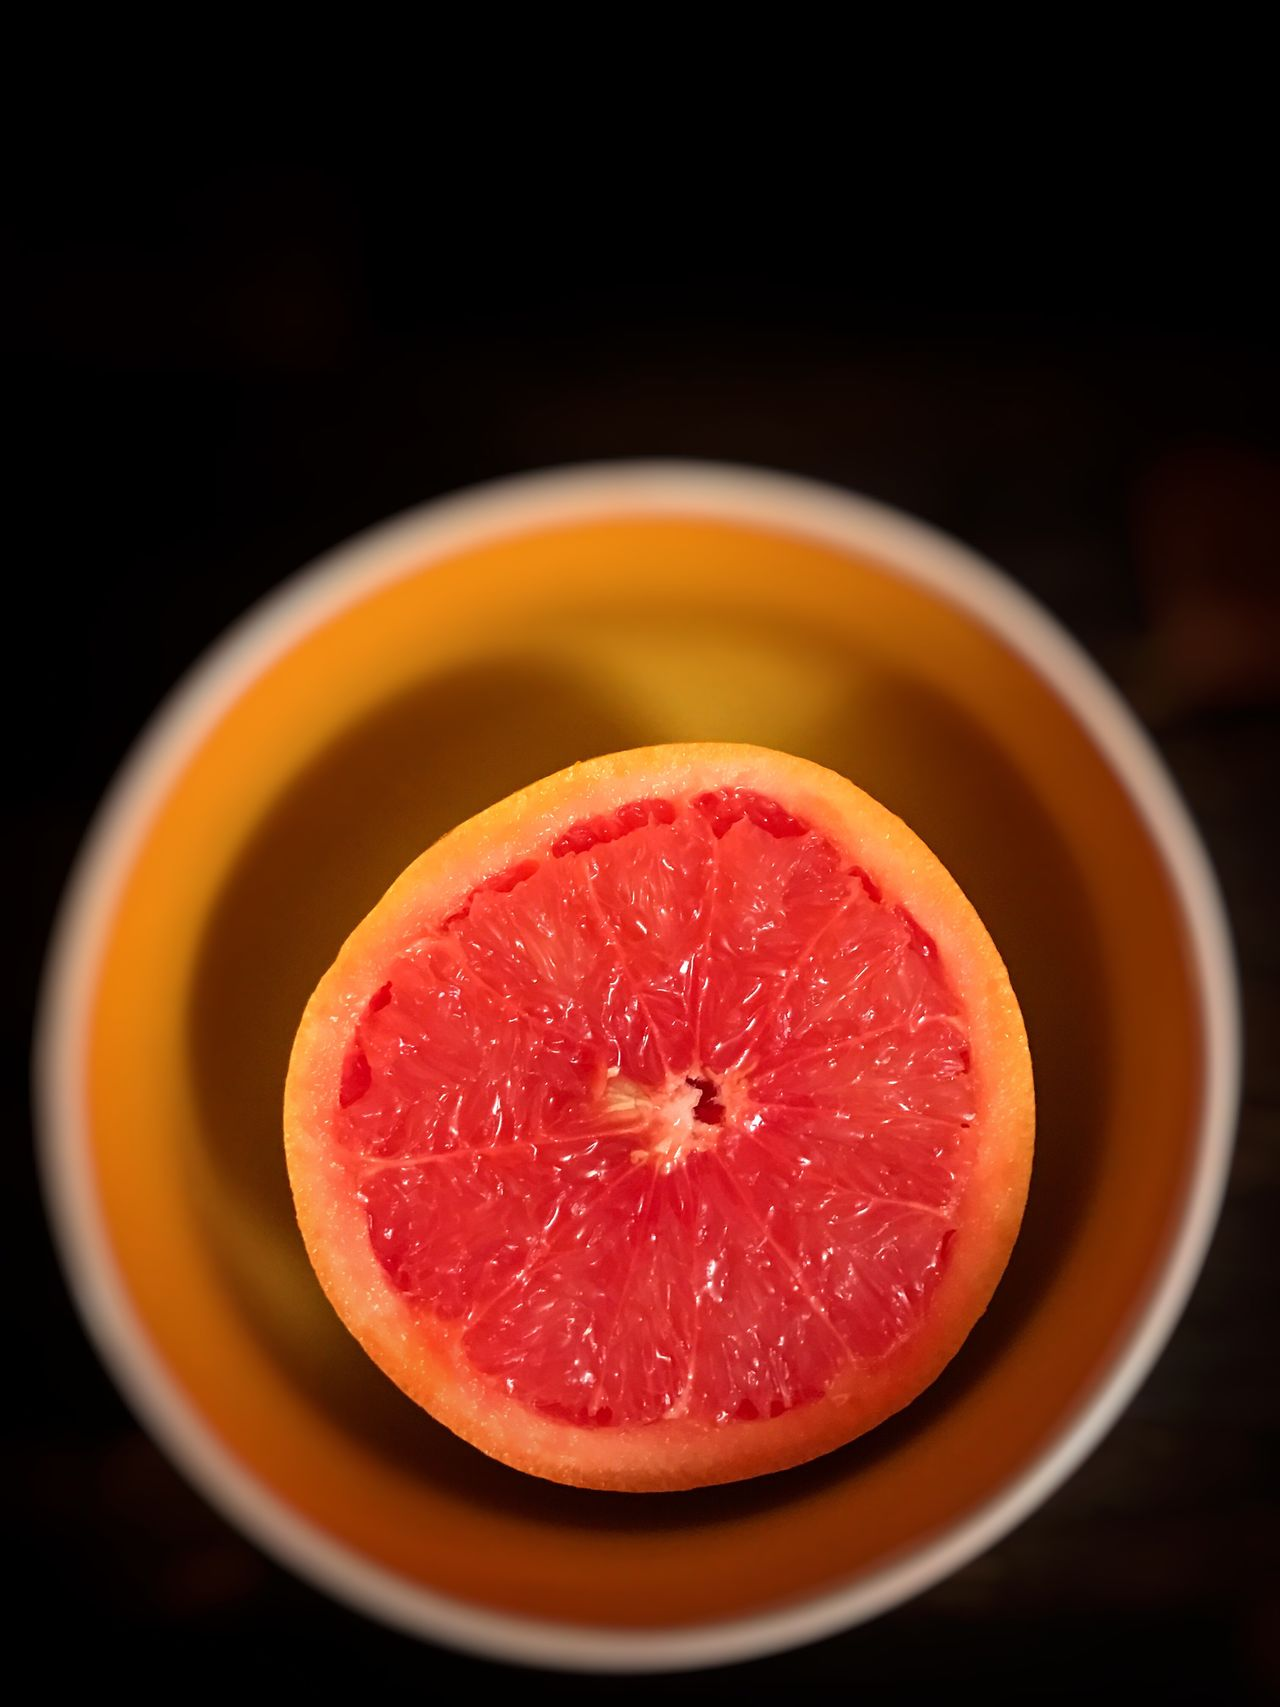 Freshness Black Background Studio Shot Healthy Eating No People Fruit Food SLICE Close-up Plate Ready-to-eat Grapefruit Indoors  Bowl Colours Color